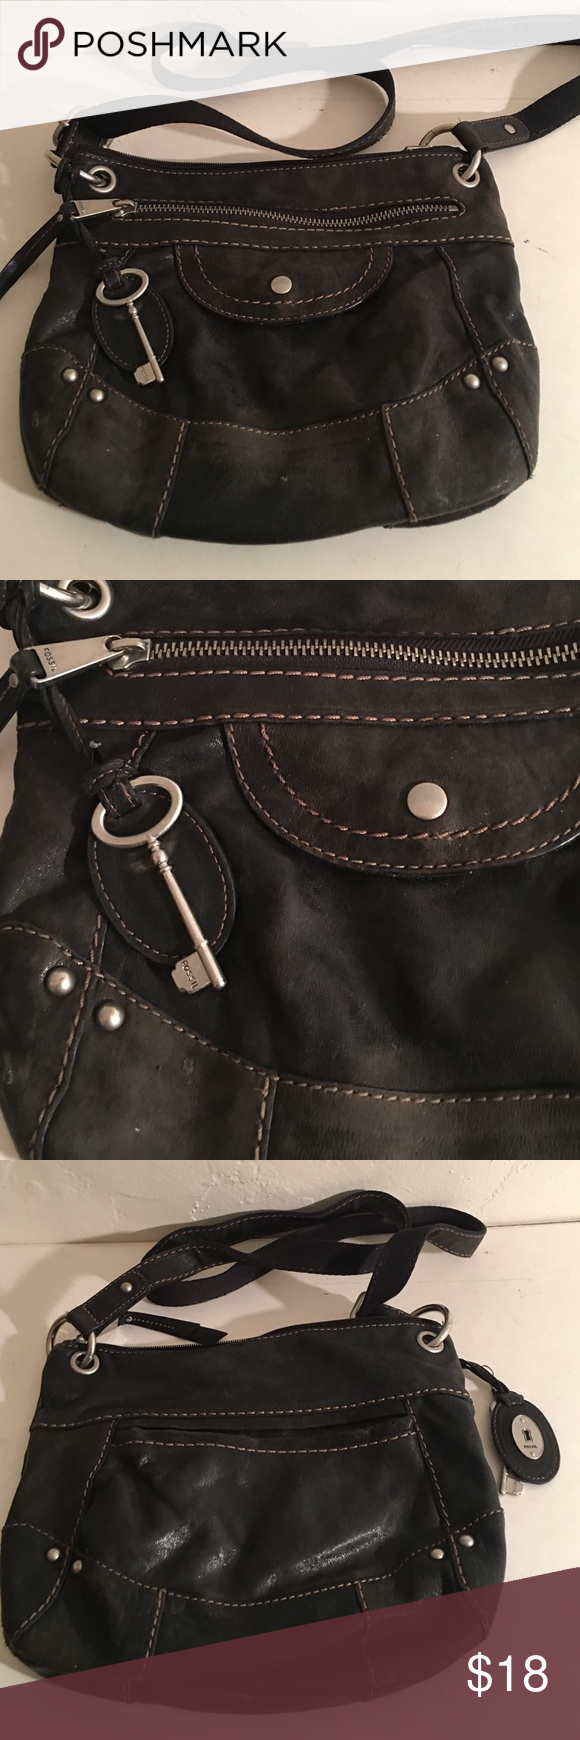 FOSSIL LEATHER CROSSBODY BAG 12 by 10 BLACK PREOWNED GOOD CONDITION FOSSIL BLACK LEATHER BAG WITH SHOULDER STRAP LOTS OF ZIPPERED COMPARTMENTS THE LOGO KEY IS THERE MEASURES 12 by 10 ALL LEATHER FOSSIL Bags Crossbody Bags